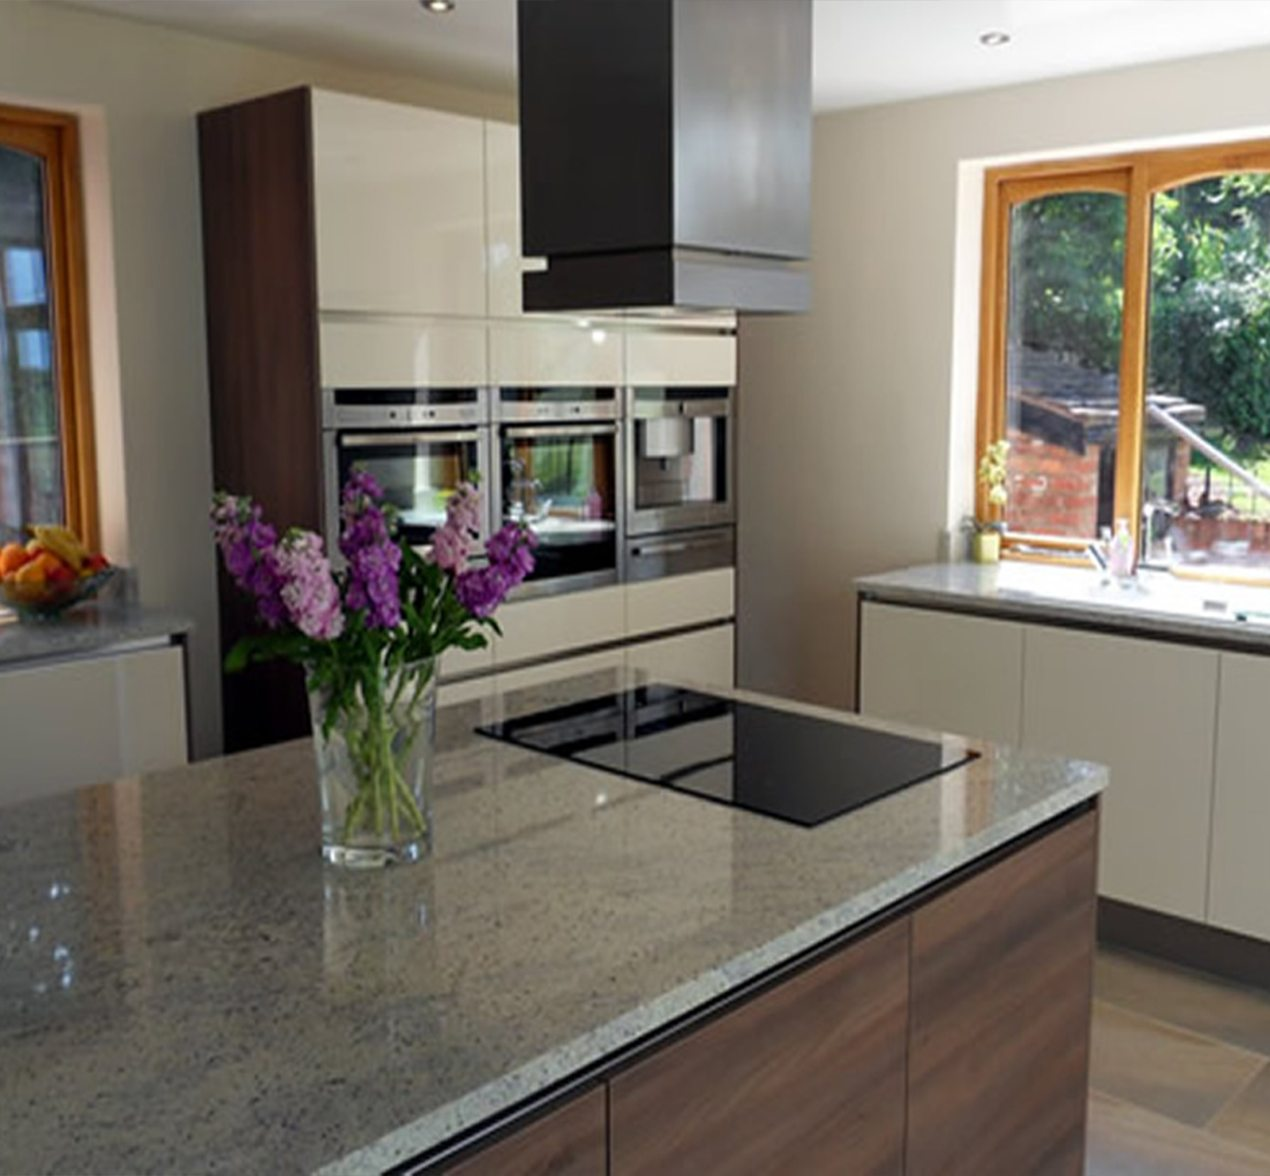 Family helps to design their own kitchen